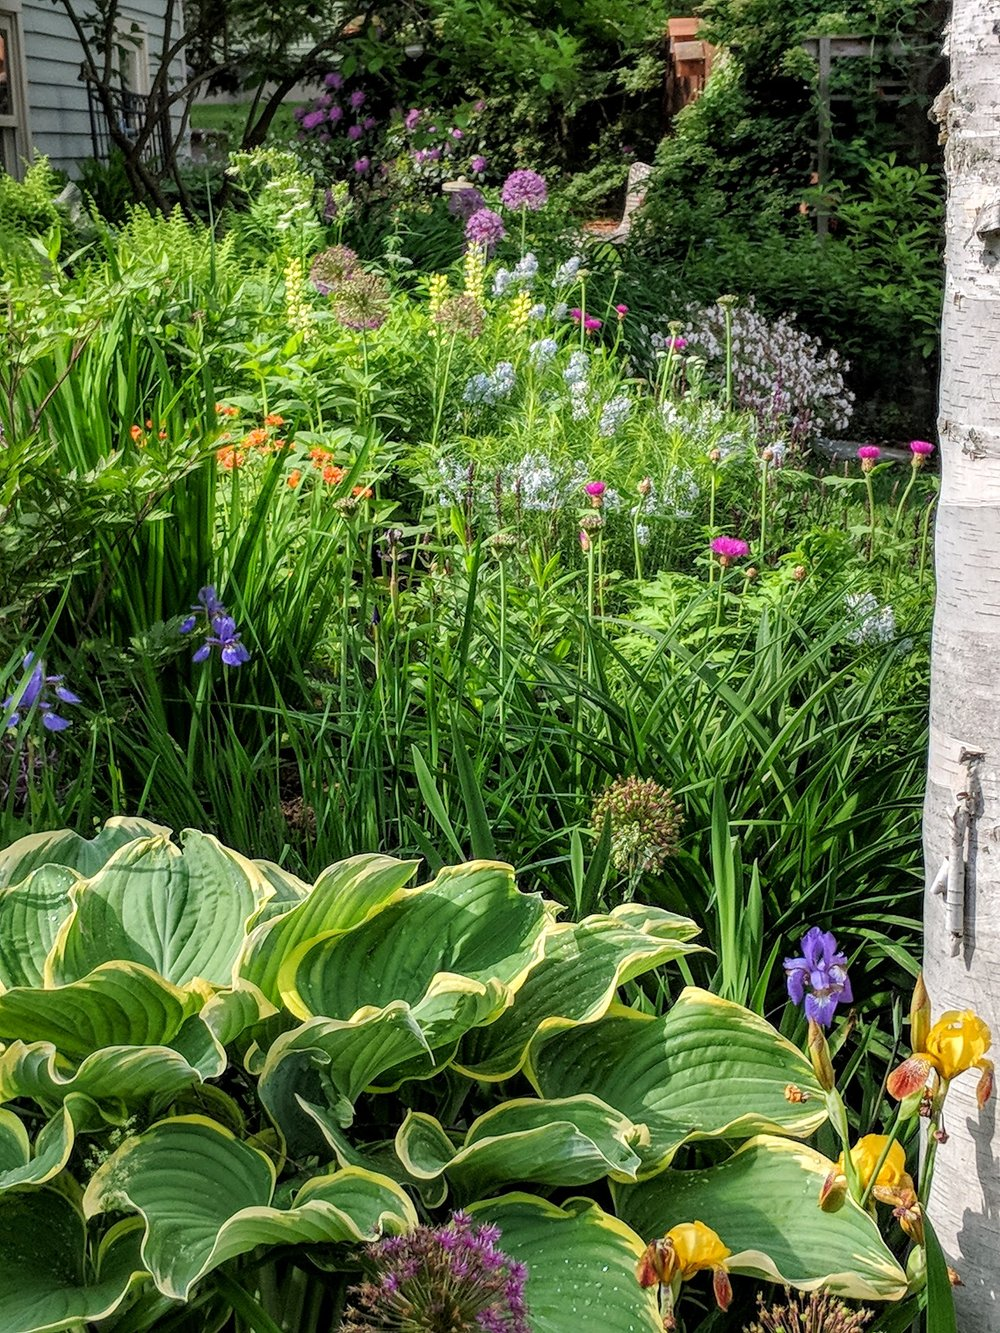 2018-06-02-allium-west-mixed-border.jpg